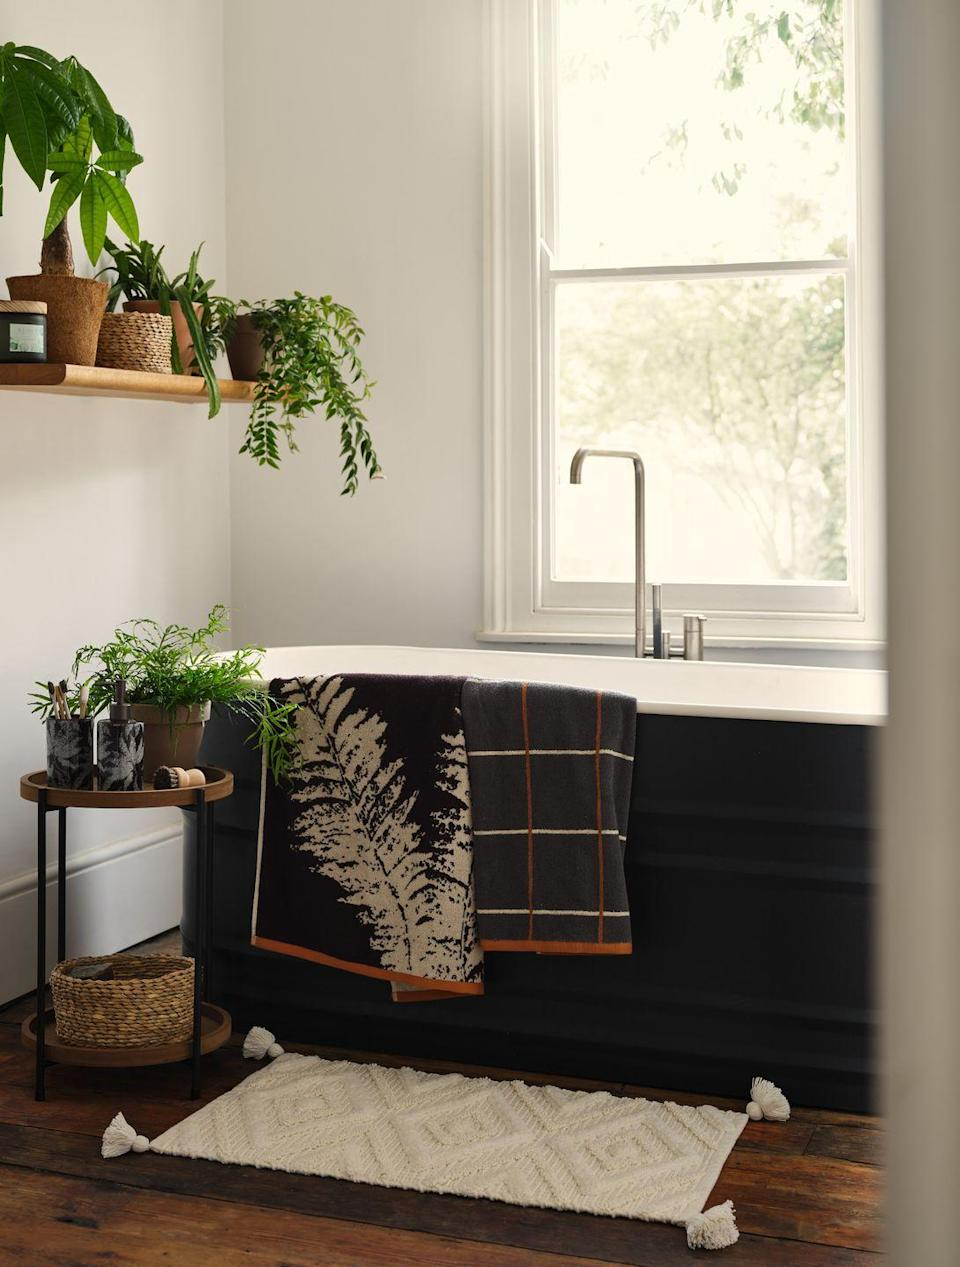 """<p>Want to update your <a href=""""https://www.housebeautiful.com/uk/renovate/build/a36741800/bathroom-renovations/"""" rel=""""nofollow noopener"""" target=""""_blank"""" data-ylk=""""slk:bathroom"""" class=""""link rapid-noclick-resp"""">bathroom</a> on a budget? Look no further than Dunelm's Forest Treasure trend, which has everything from towels (£4) to storage baskets (£8) and must-have tumbler sets (£8). Transform your space into a clean, relaxing, and bright room with these accessories. </p><p><a class=""""link rapid-noclick-resp"""" href=""""https://direct.asda.com/george/home/D26,default,sc.html"""" rel=""""nofollow noopener"""" target=""""_blank"""" data-ylk=""""slk:SHOP NOW"""">SHOP NOW</a></p>"""